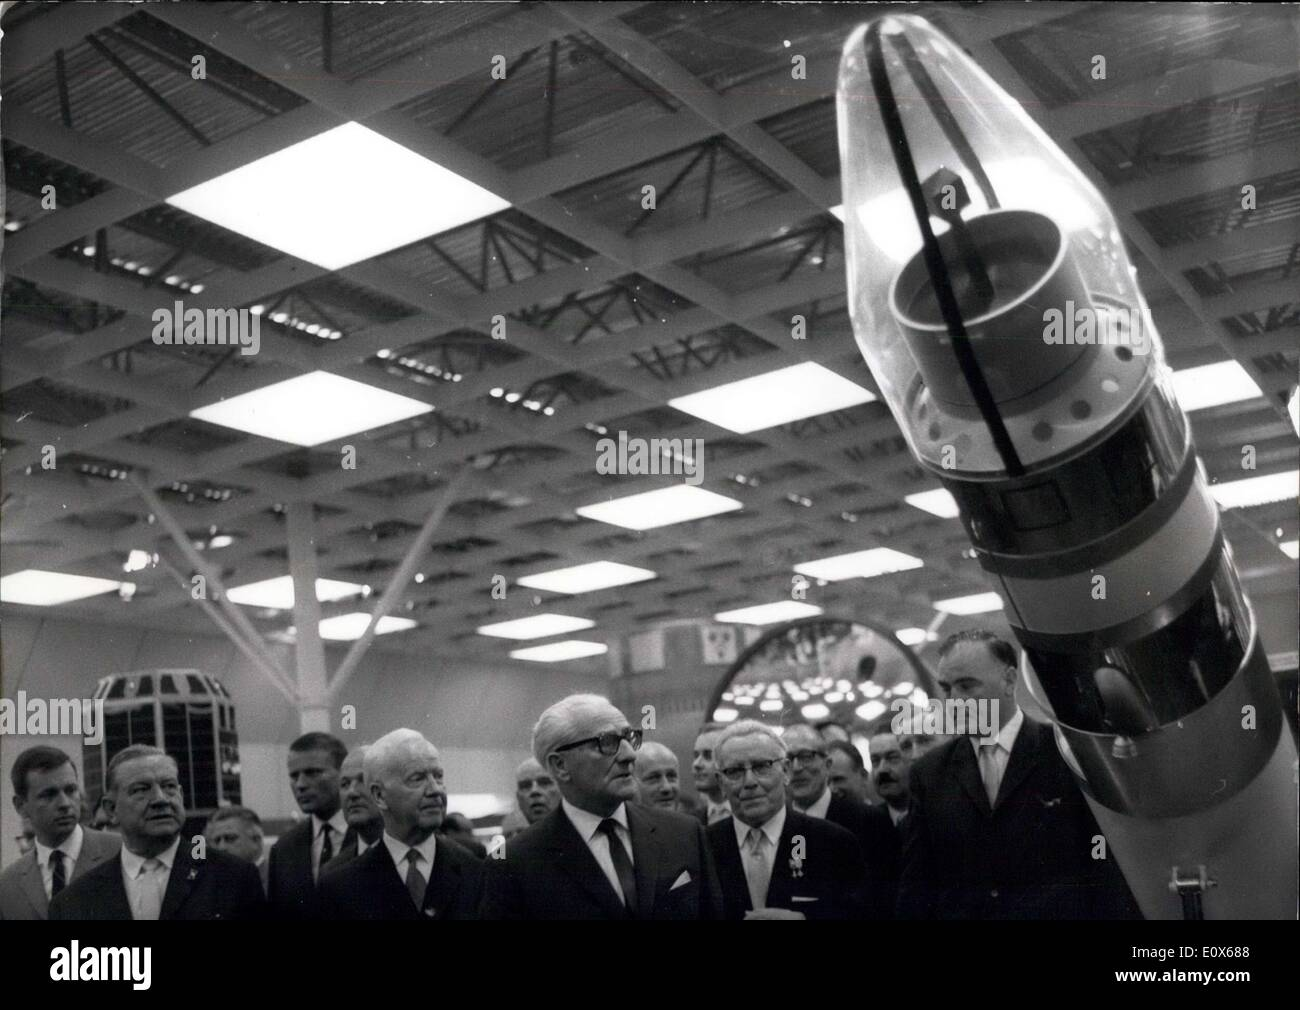 Jun. 25, 1965 - First World Exhibition of Transport and Communications ( 25.6 - 3.10.65): On June 25th, 1965 the First World Exhibition of Transport and Communications was opened by President Luenke in Munich. Photo shows The Bavarian President Goppel (left) and President Luebke with representatives of the Governments of the Federal Republic and of Bavaria and representatives of the Governments of the Federal Republic and of Bavaria and representatives of the economy looking for a model of rocket. - Stock Image